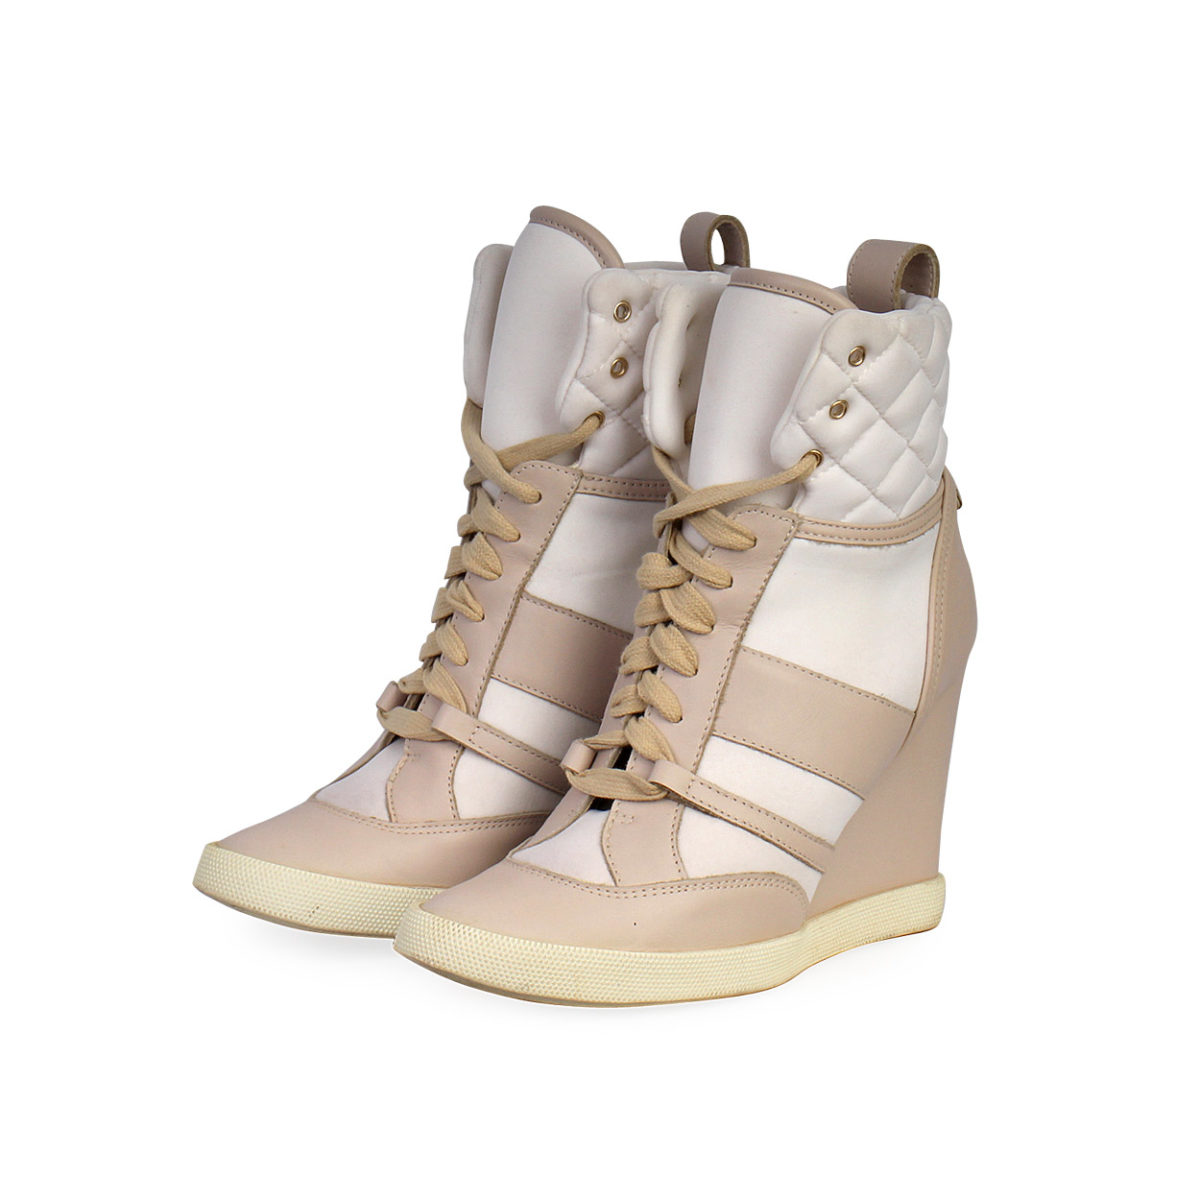 CHLOE Quilted Leather High Top Wedge